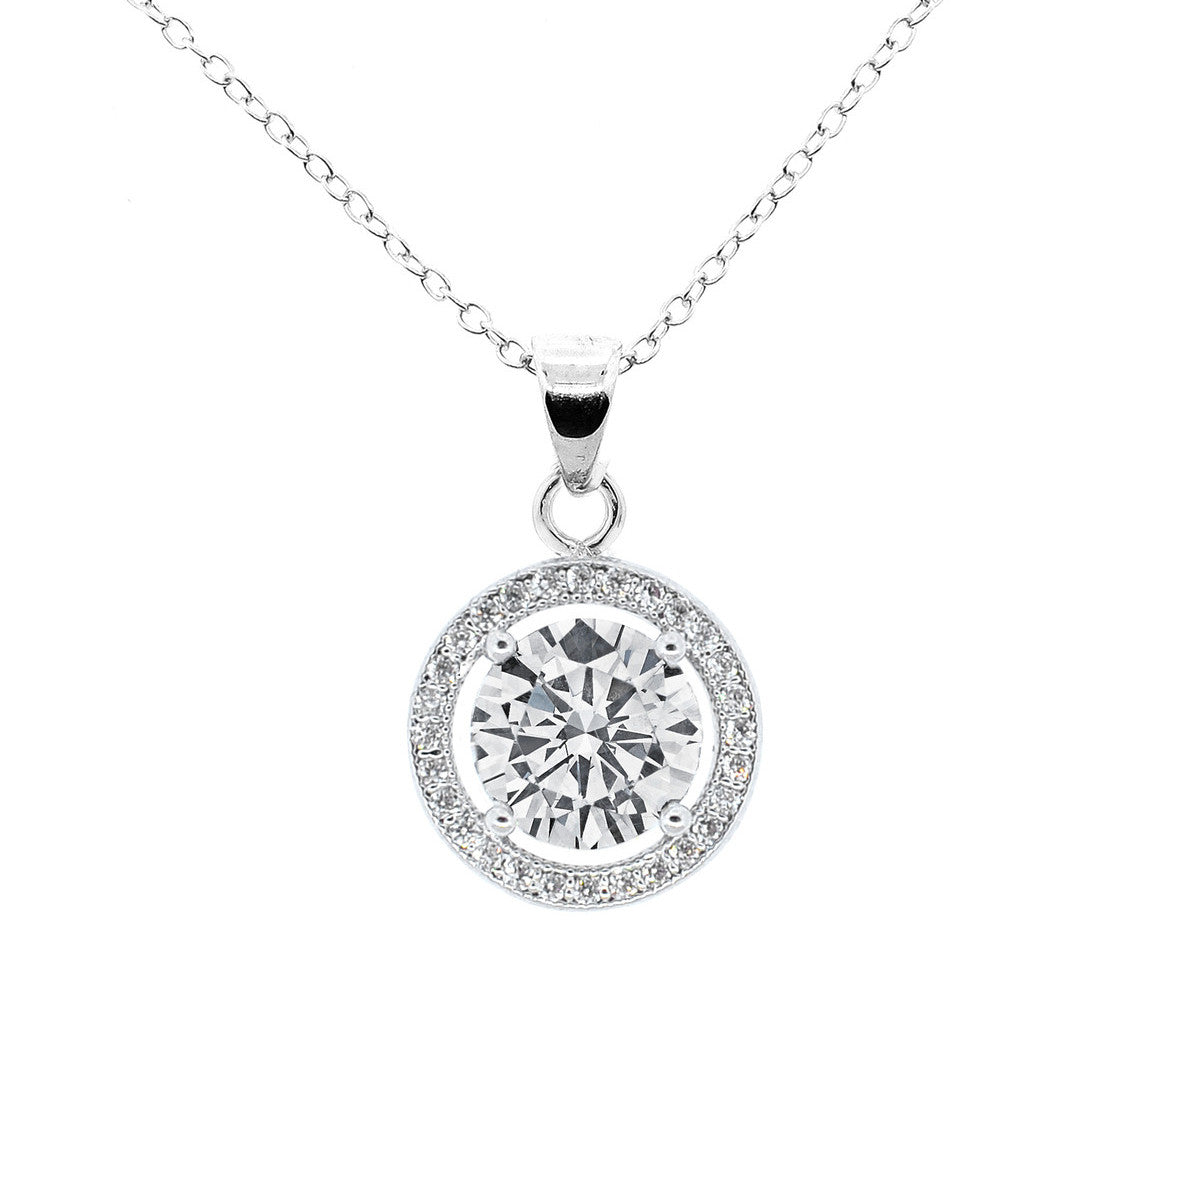 Blake 18k white gold plated pendant necklace cate chloe jewelry blake true 18k white gold plated pendant necklace mozeypictures